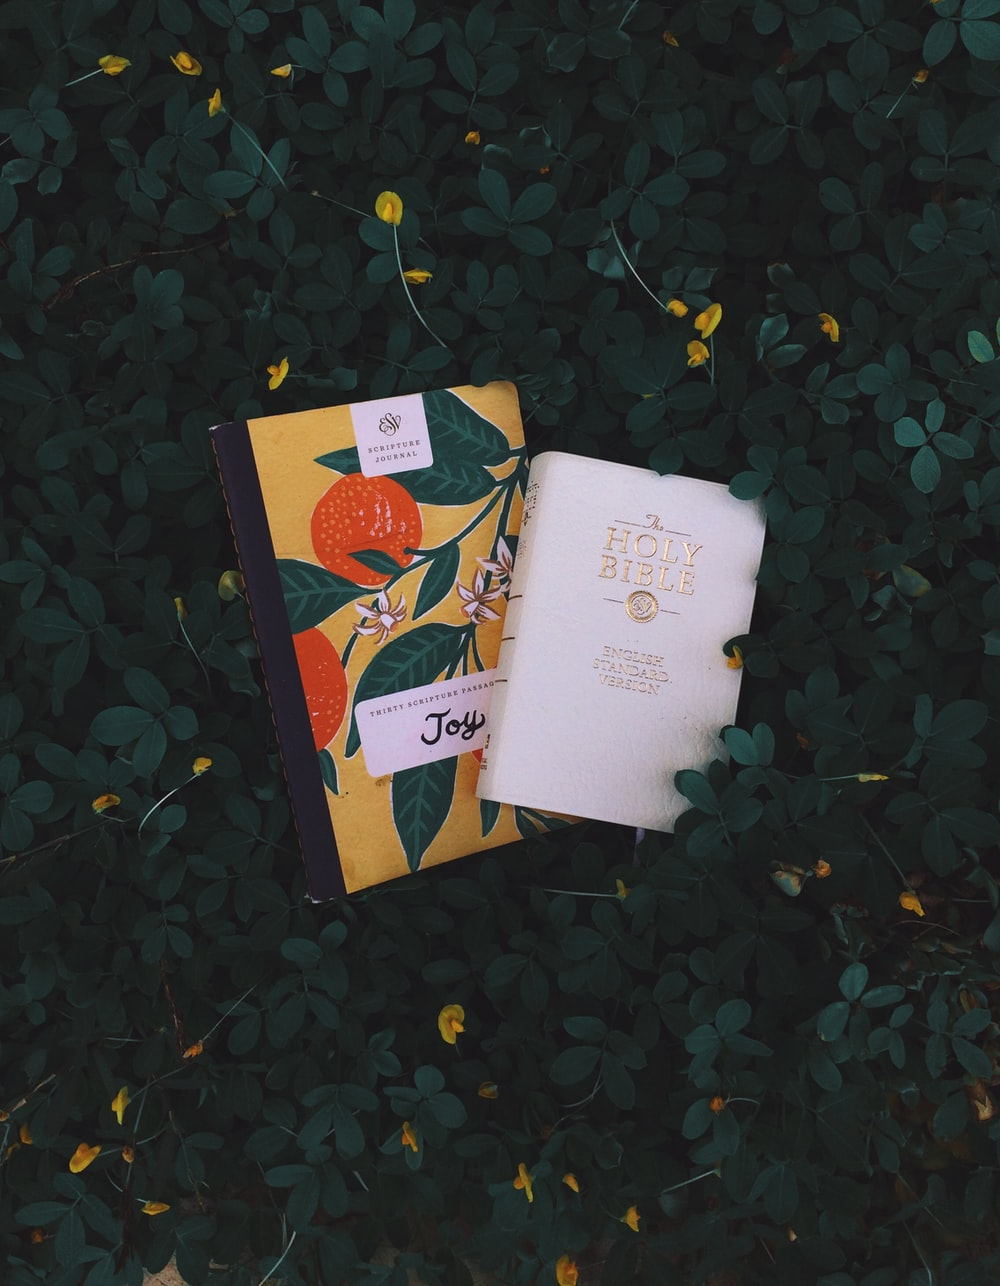 books on bushes with plant